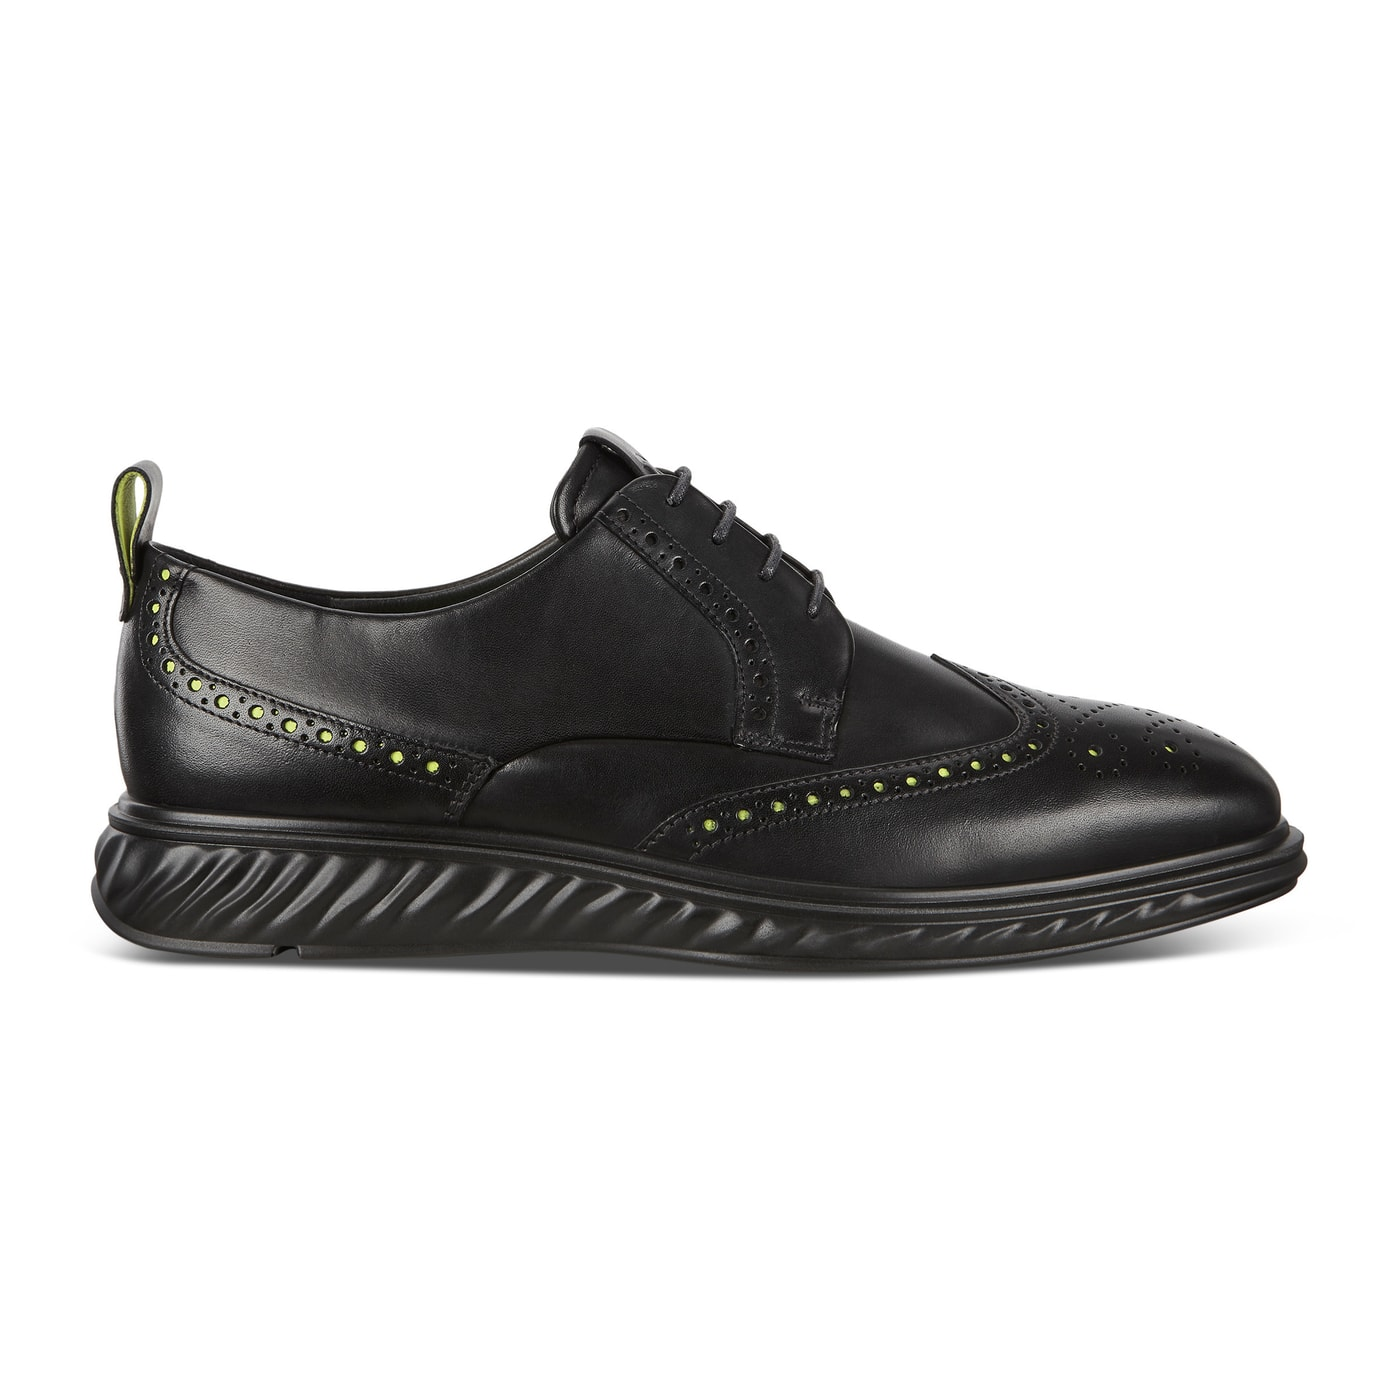 Ecco Men's St. 1 Hybrid Lite Wingtip Brogue Shoes $90, Women's Sartorelle 25 $90 & More + Free Shipping